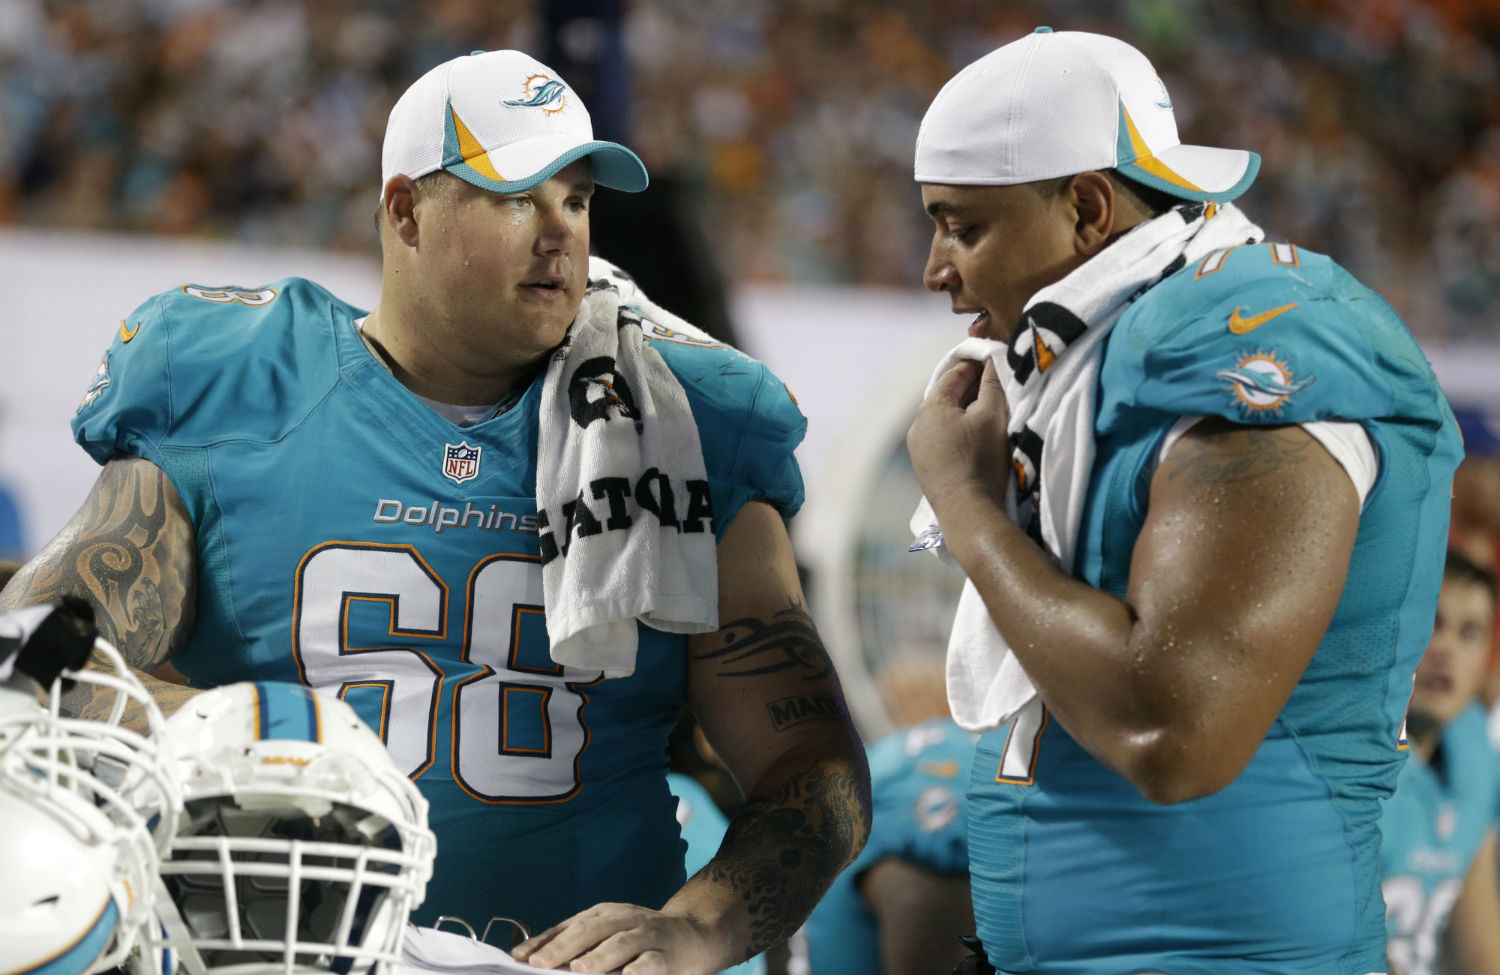 pMiami-Dolphins-guard-Richie-Incognito-left-and-tackle-Jonathan-Martin-right.p